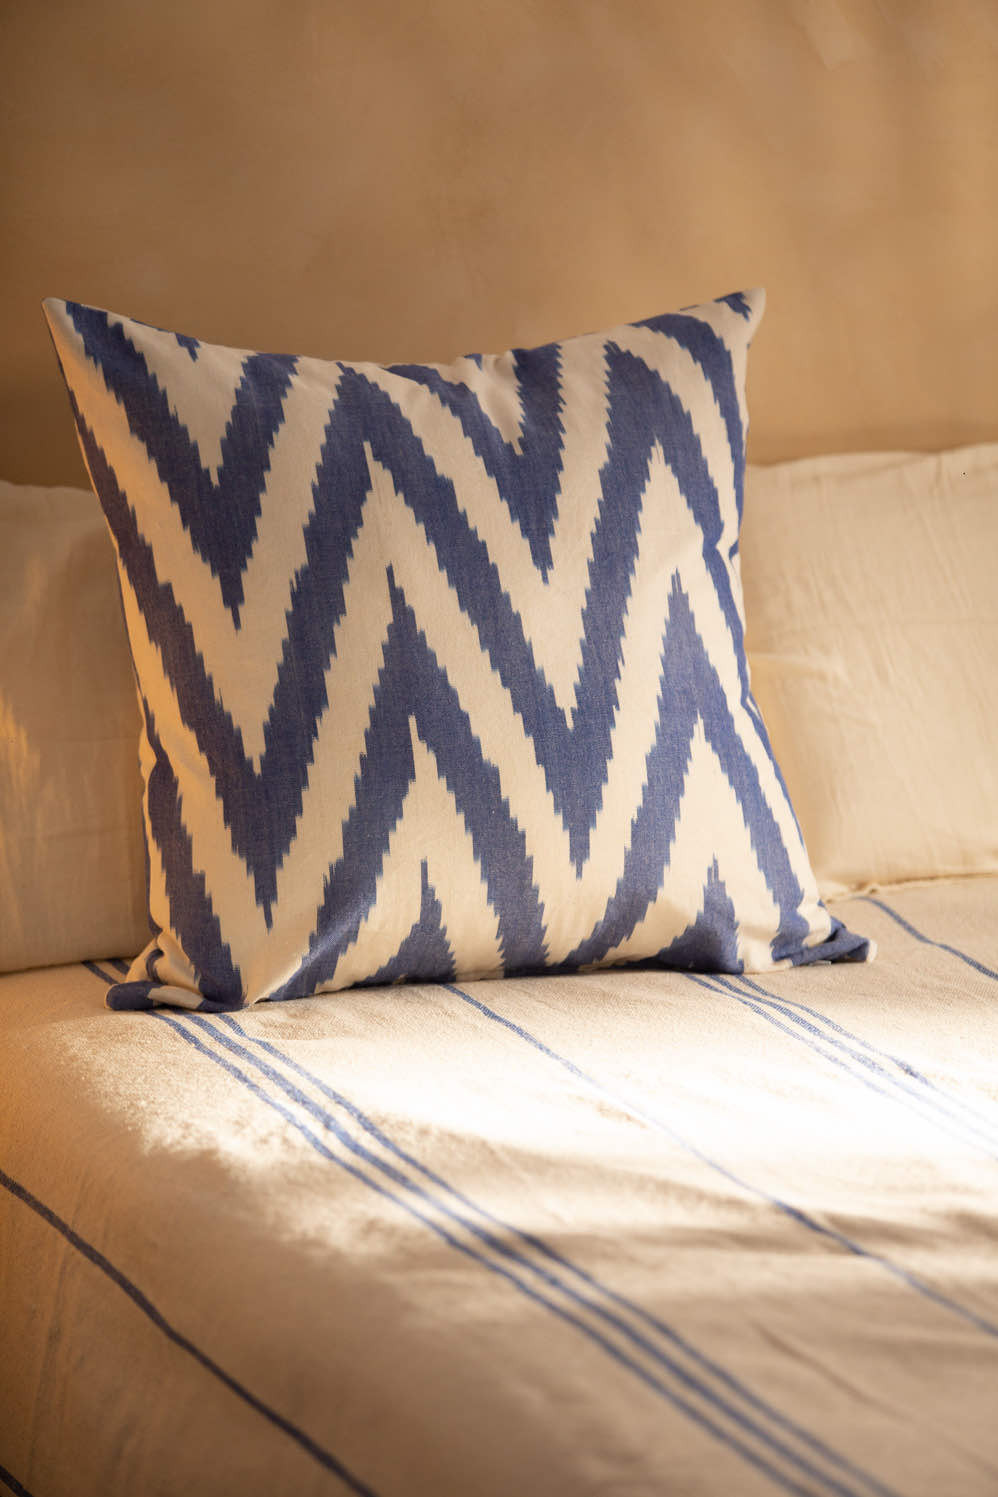 Decorative cushions for bed